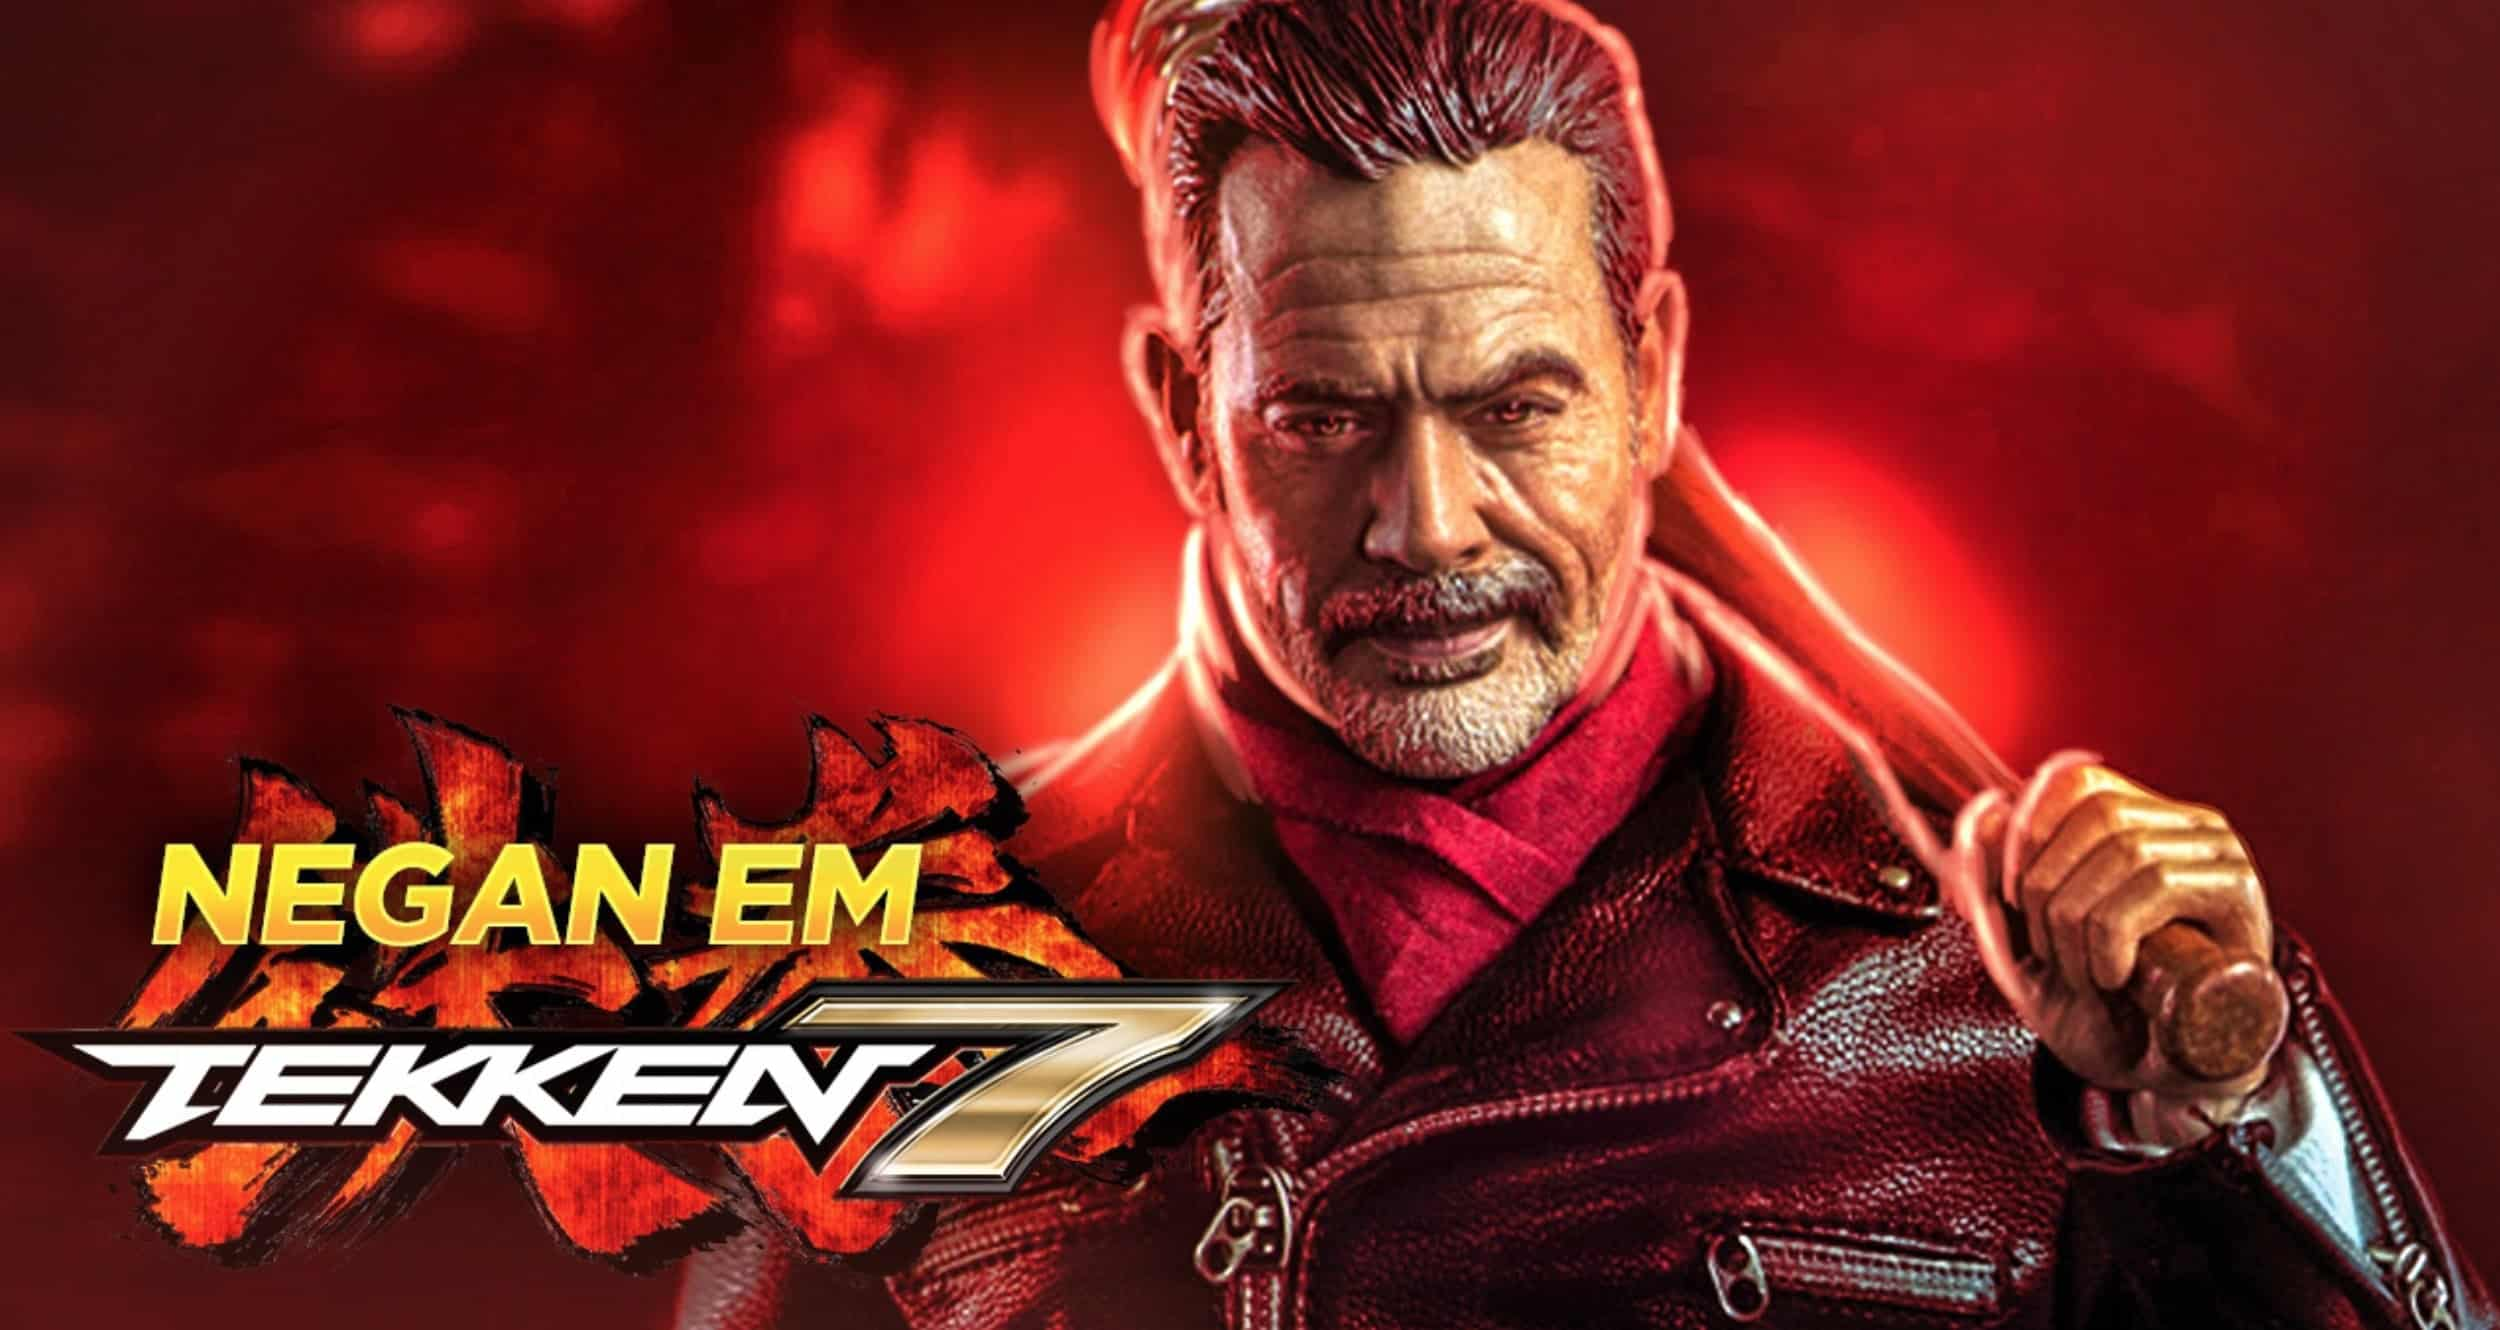 the walking dead s negan is coming to tekken 7 with lucile in hand